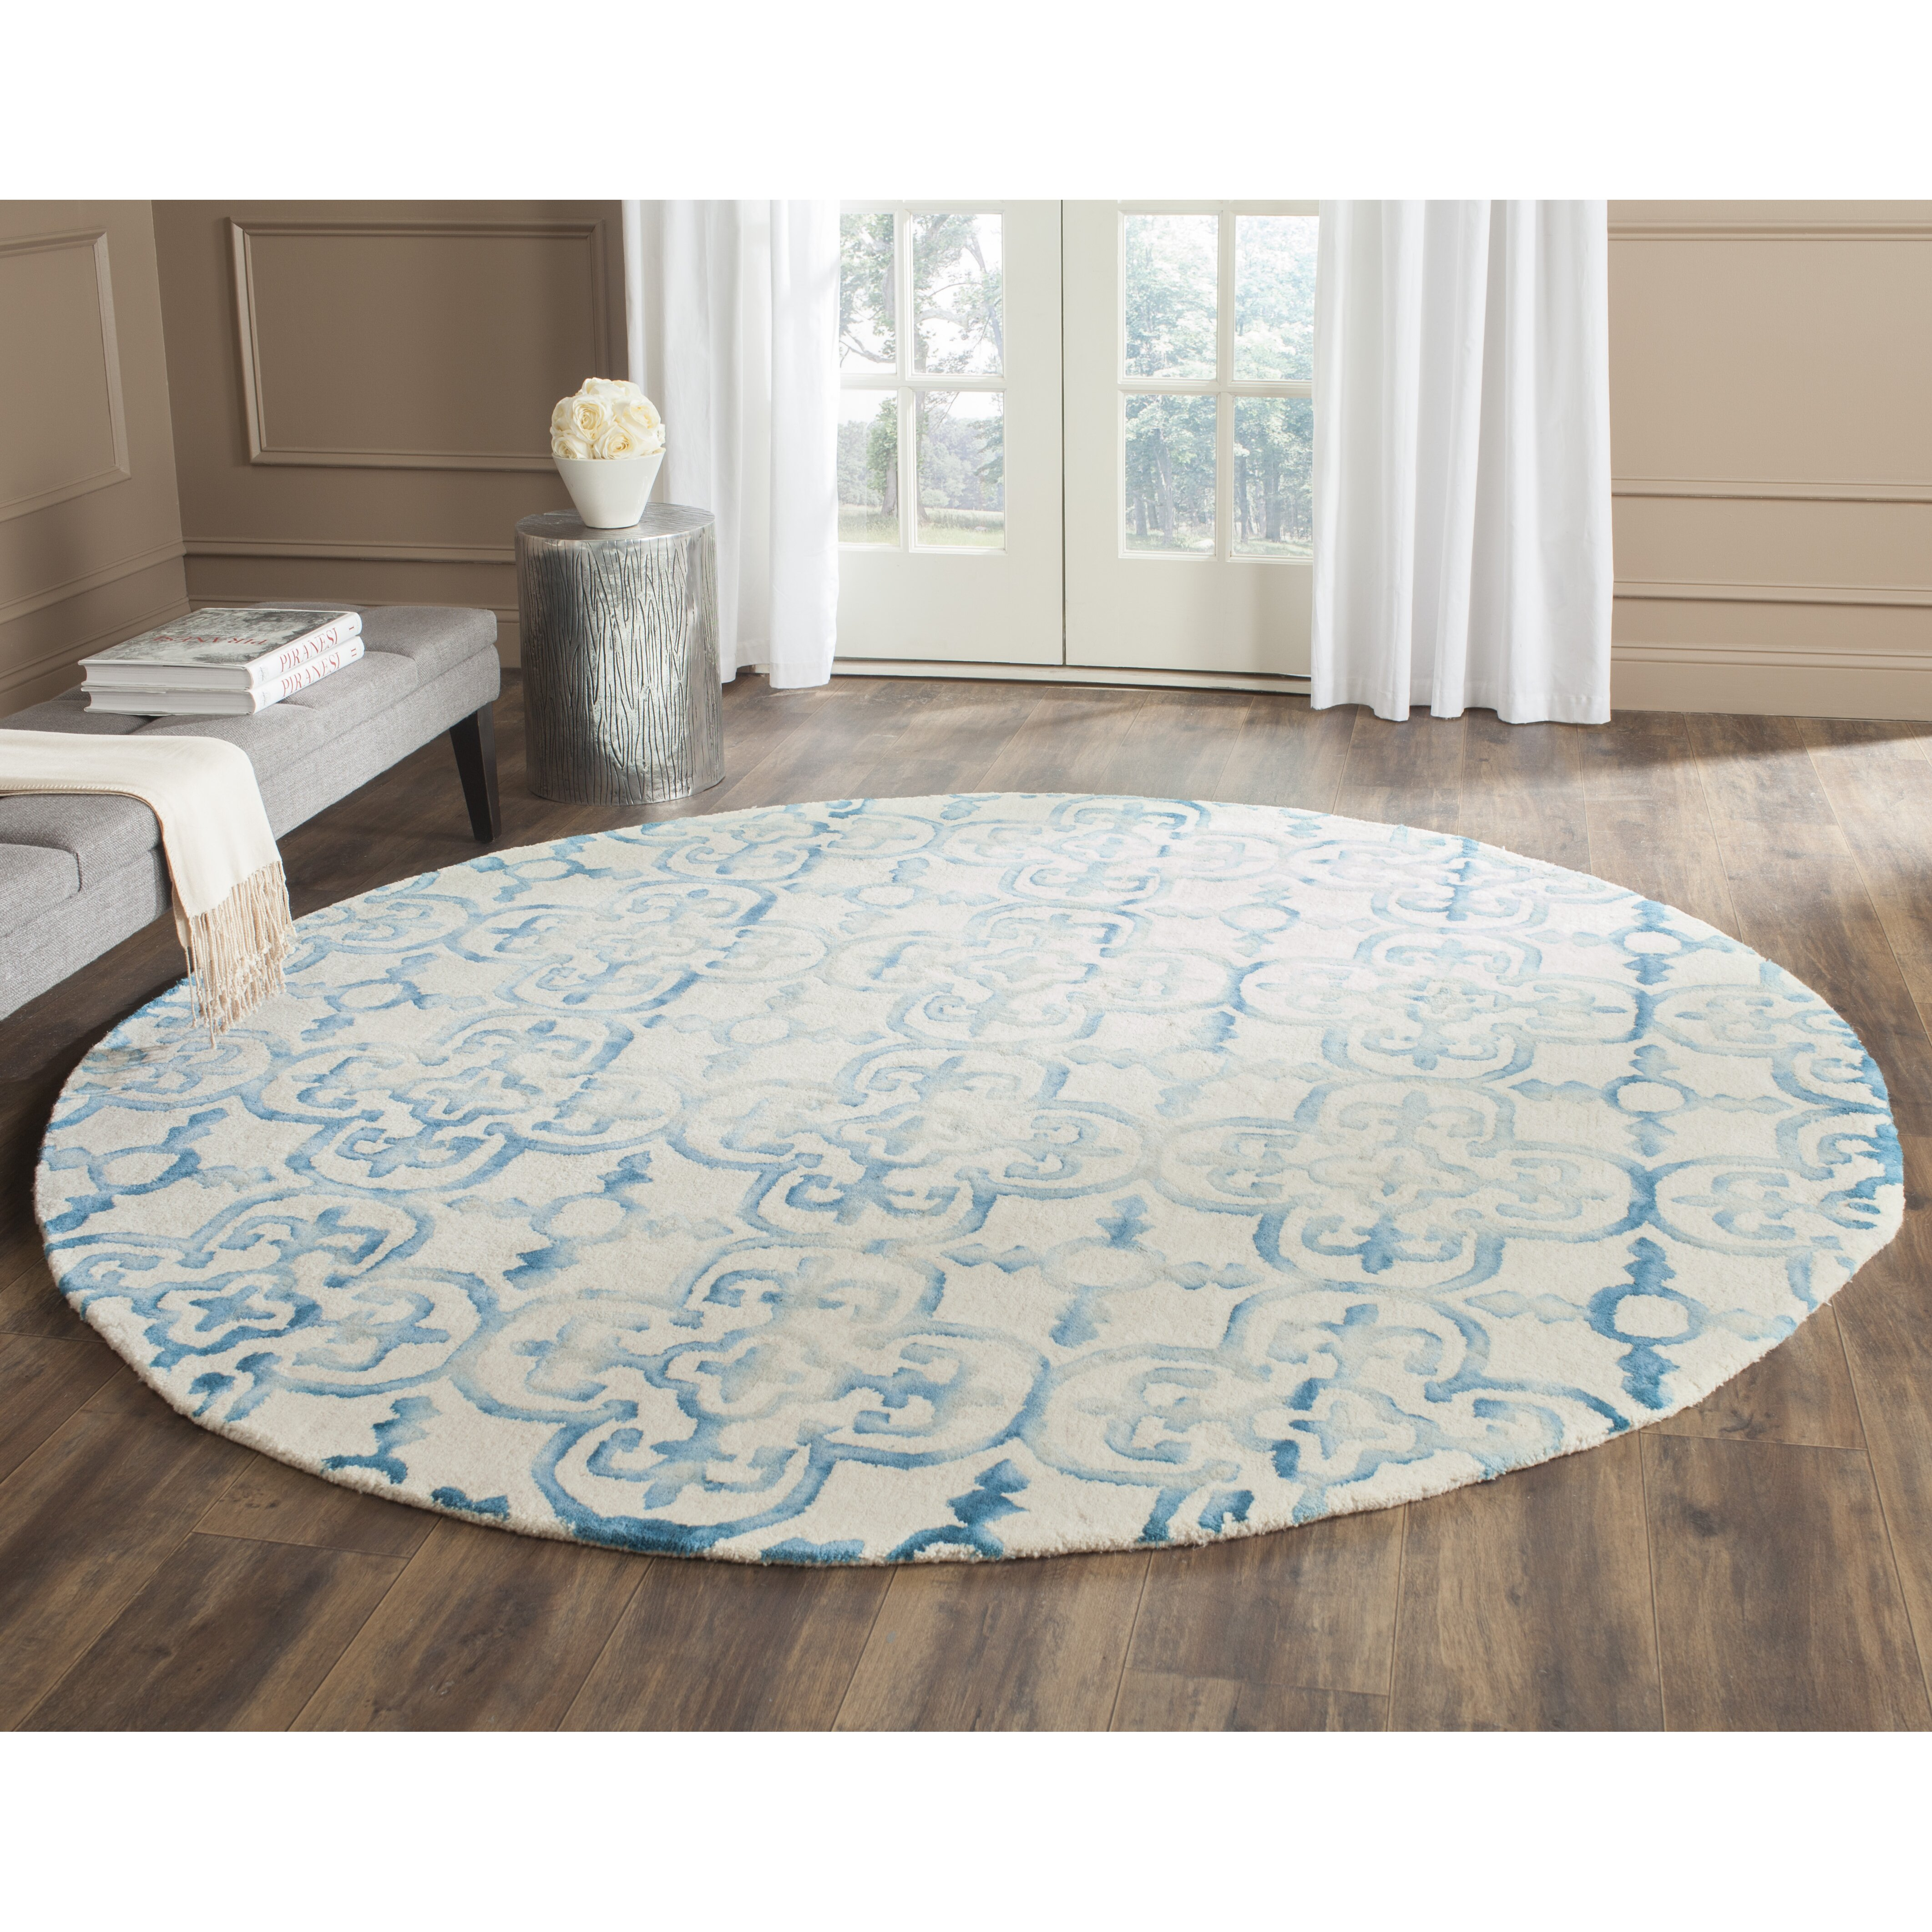 Bungalow Rose Saleya Turquoise Area Rug Reviews: Bungalow Rose Castries Hand-Tufted Ivory/Turquoise Area